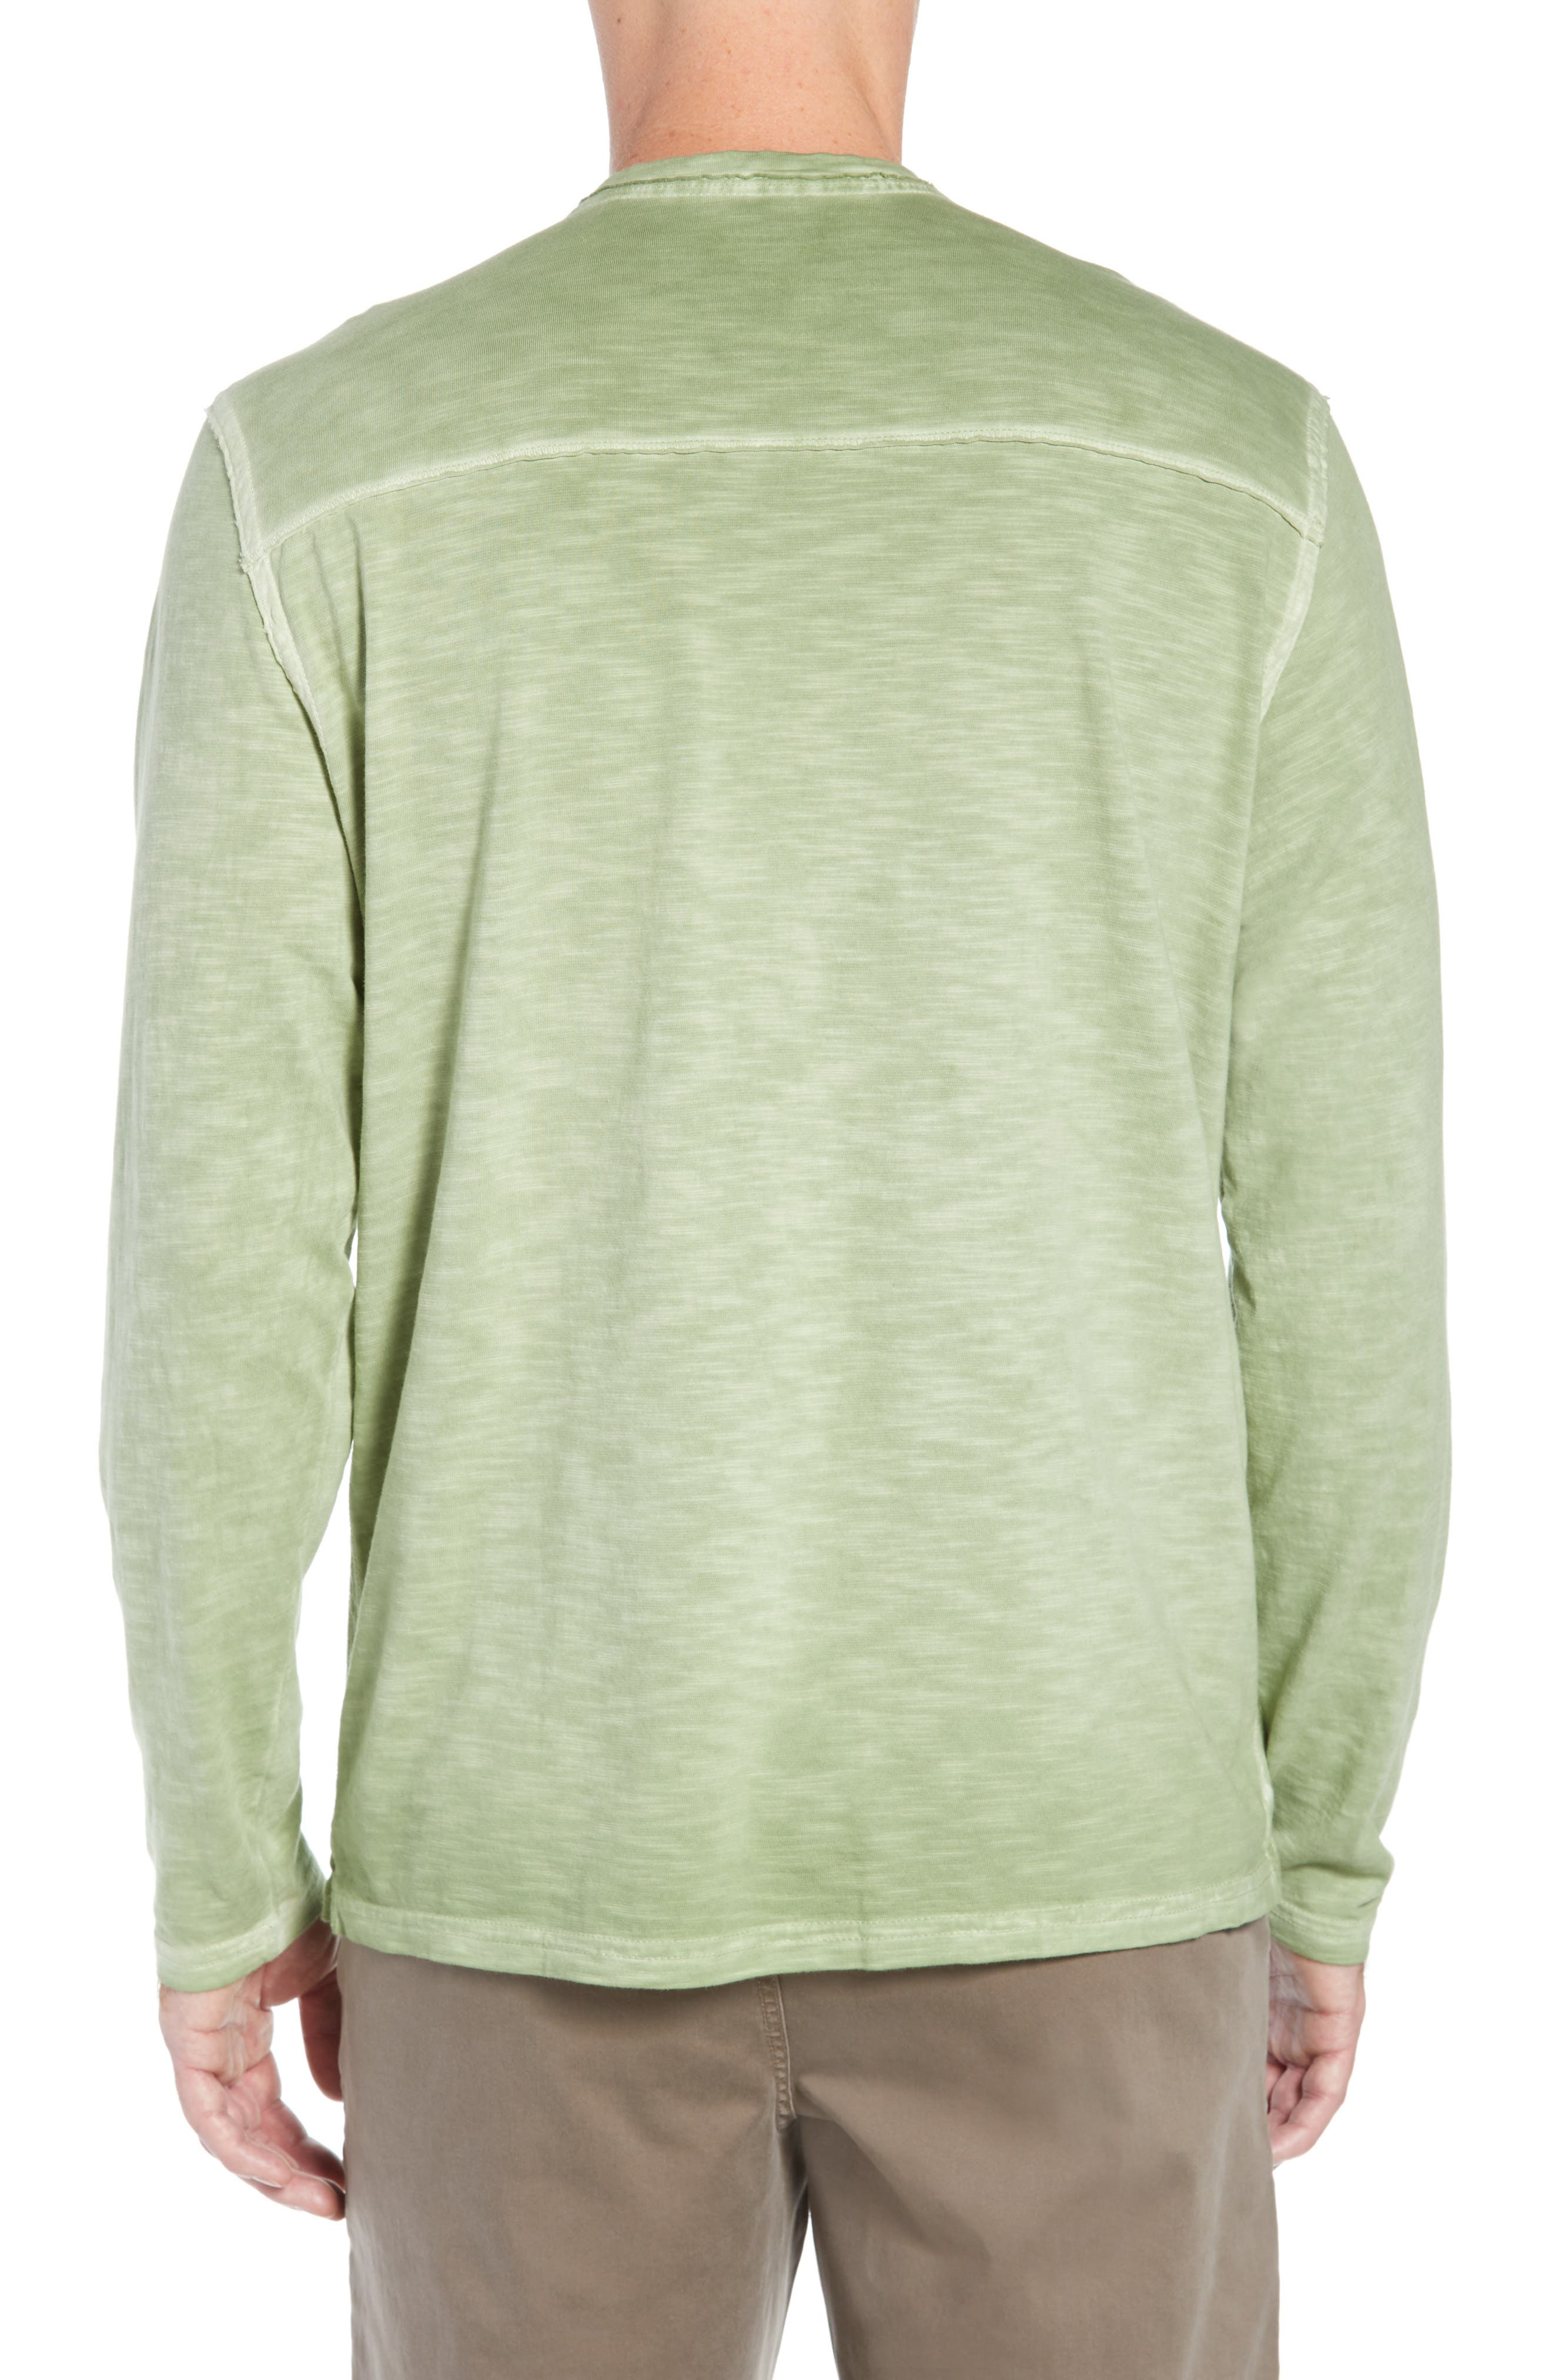 Suncoast Shores Long Sleeve V-Neck T-Shirt,                             Alternate thumbnail 2, color,                             WILD CLOVER